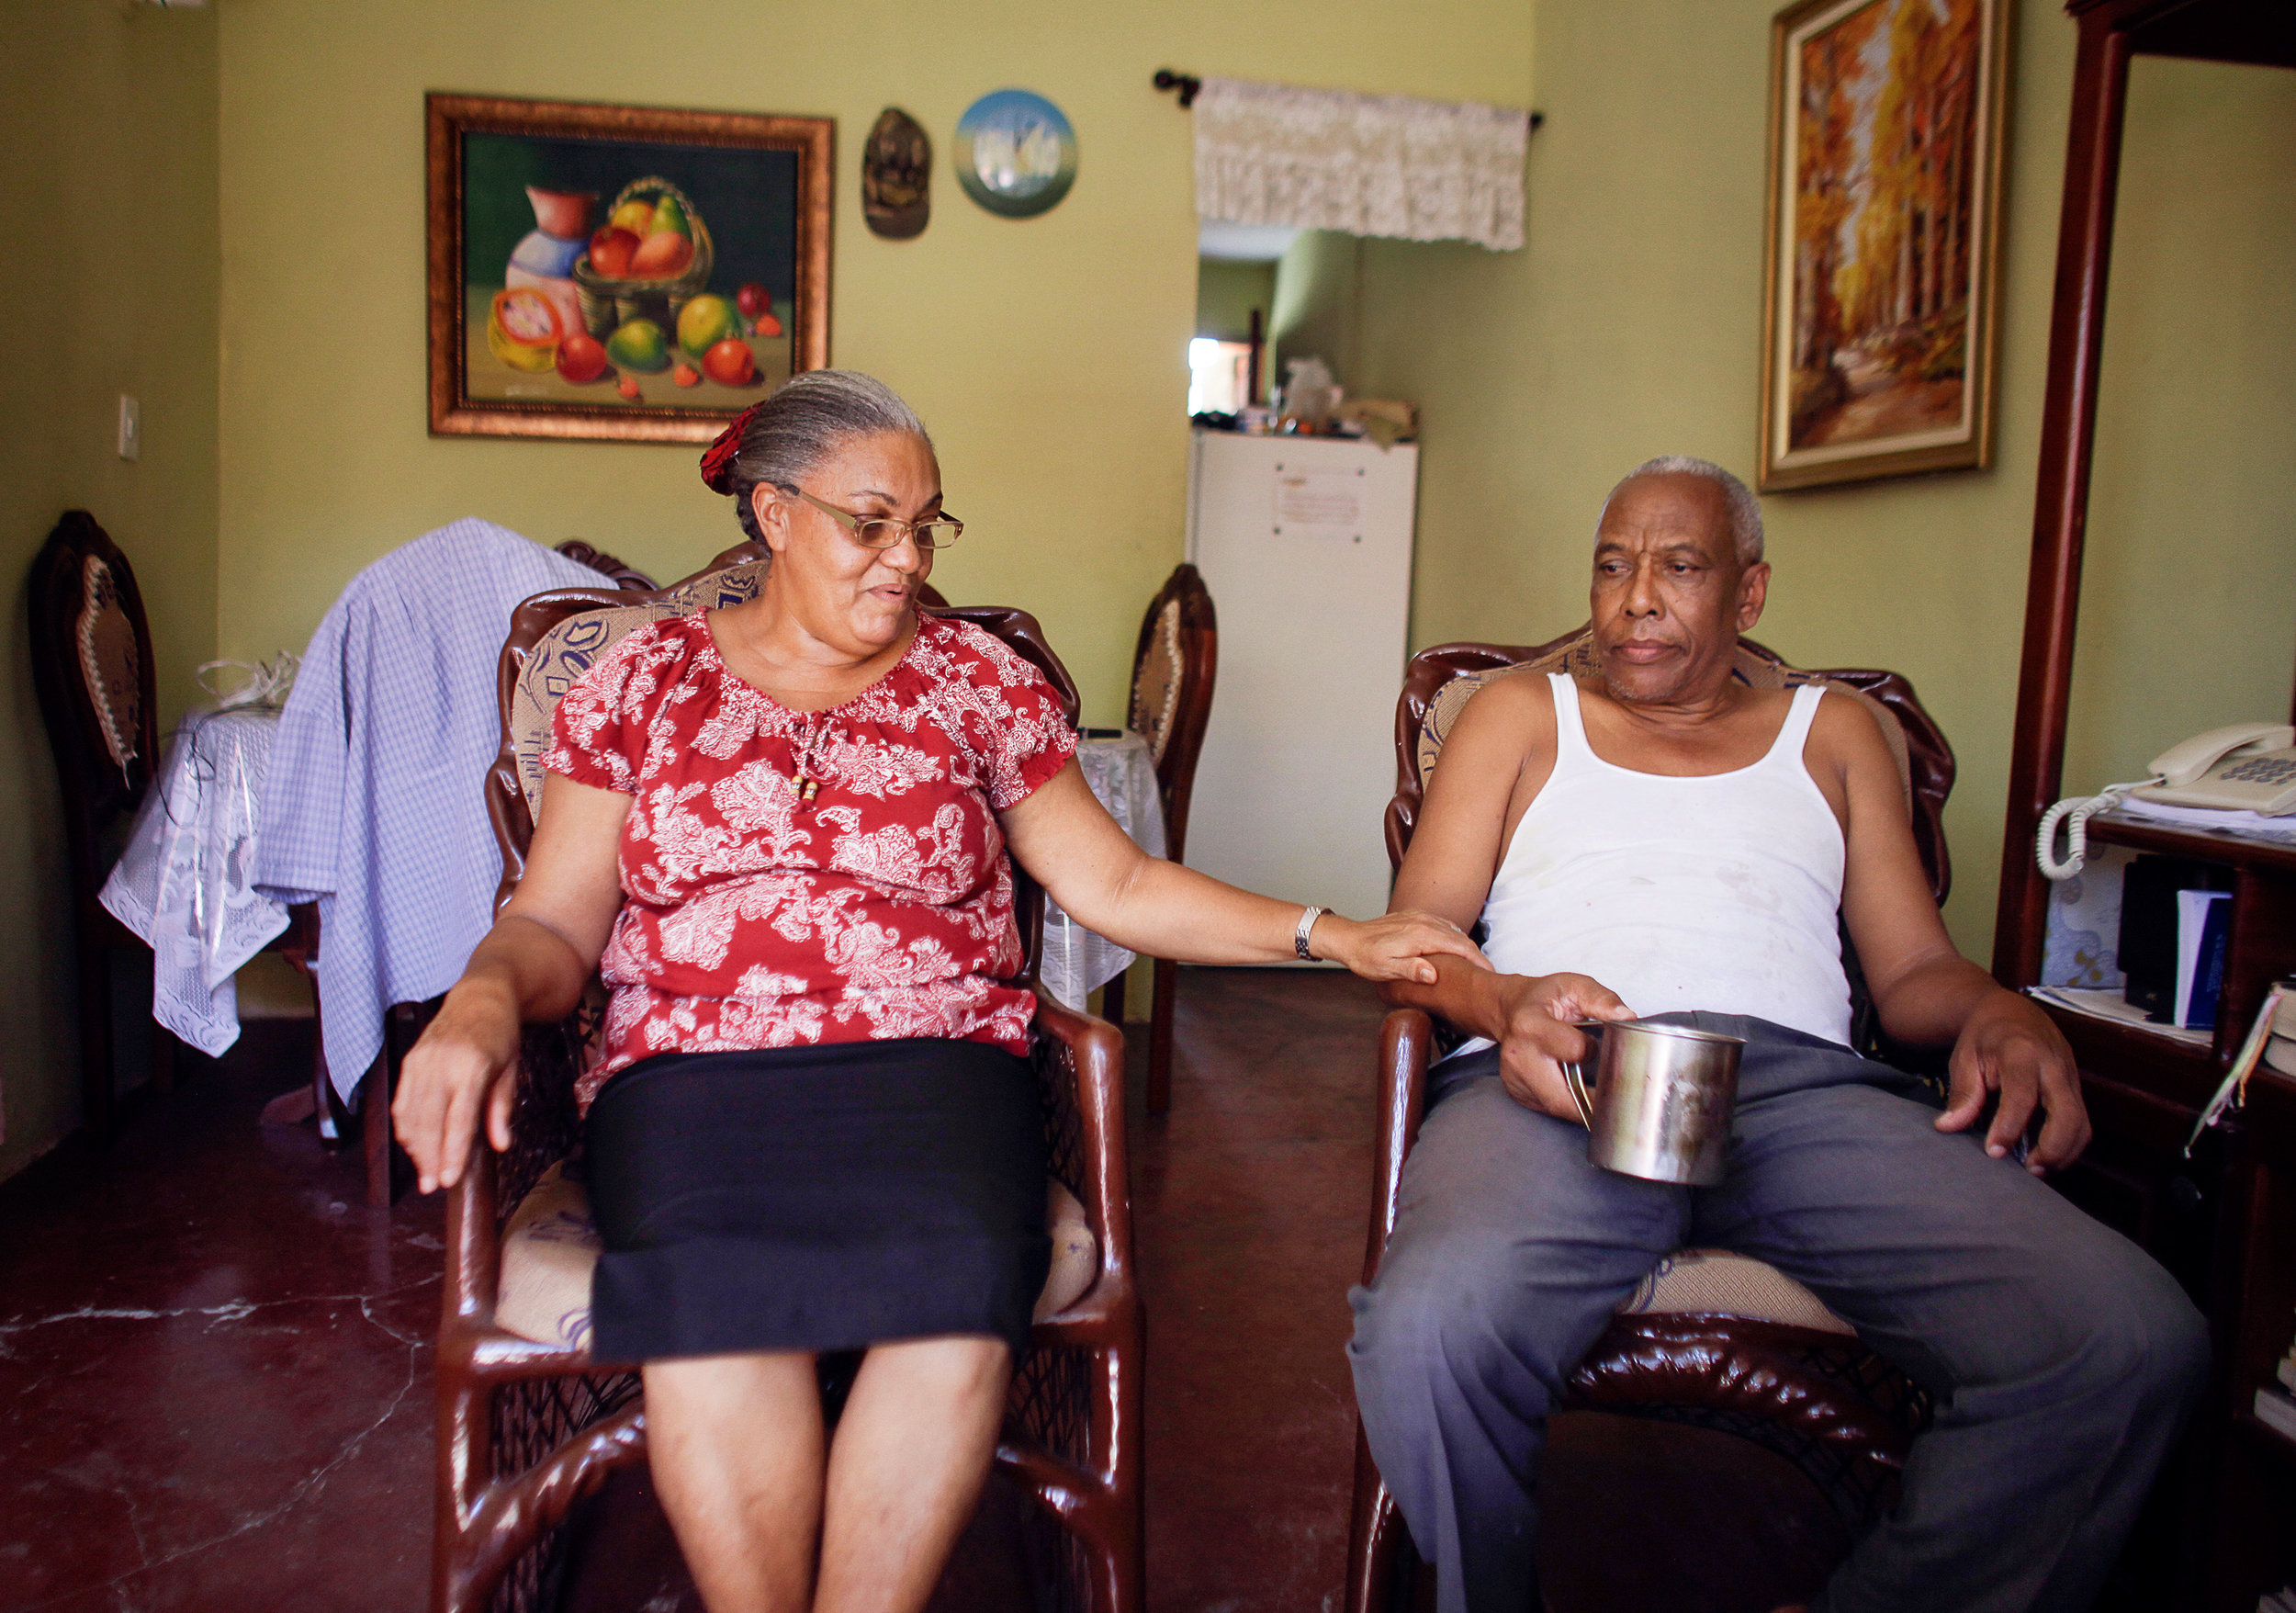 Domitilia takes the hand of her partner, Salvador, in their home in Santo Domingo, Dominican Republic. At 57 years old, Domitila has diabetes, but she still successfully recovered from tuberculosis after two years of treatment.